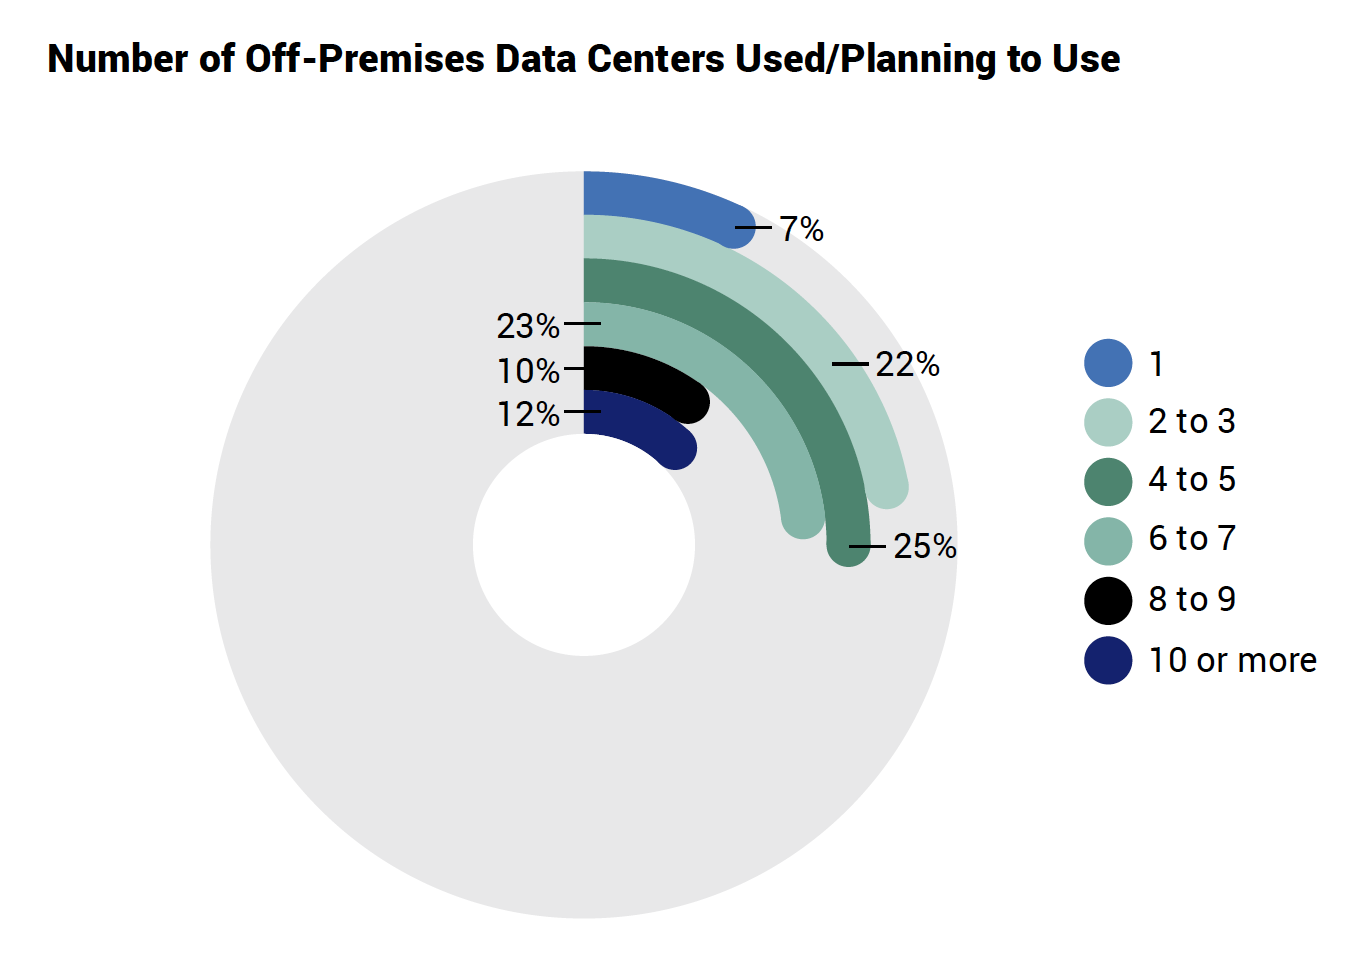 Number of Off-Premises Data Centers Used/Planning to Use